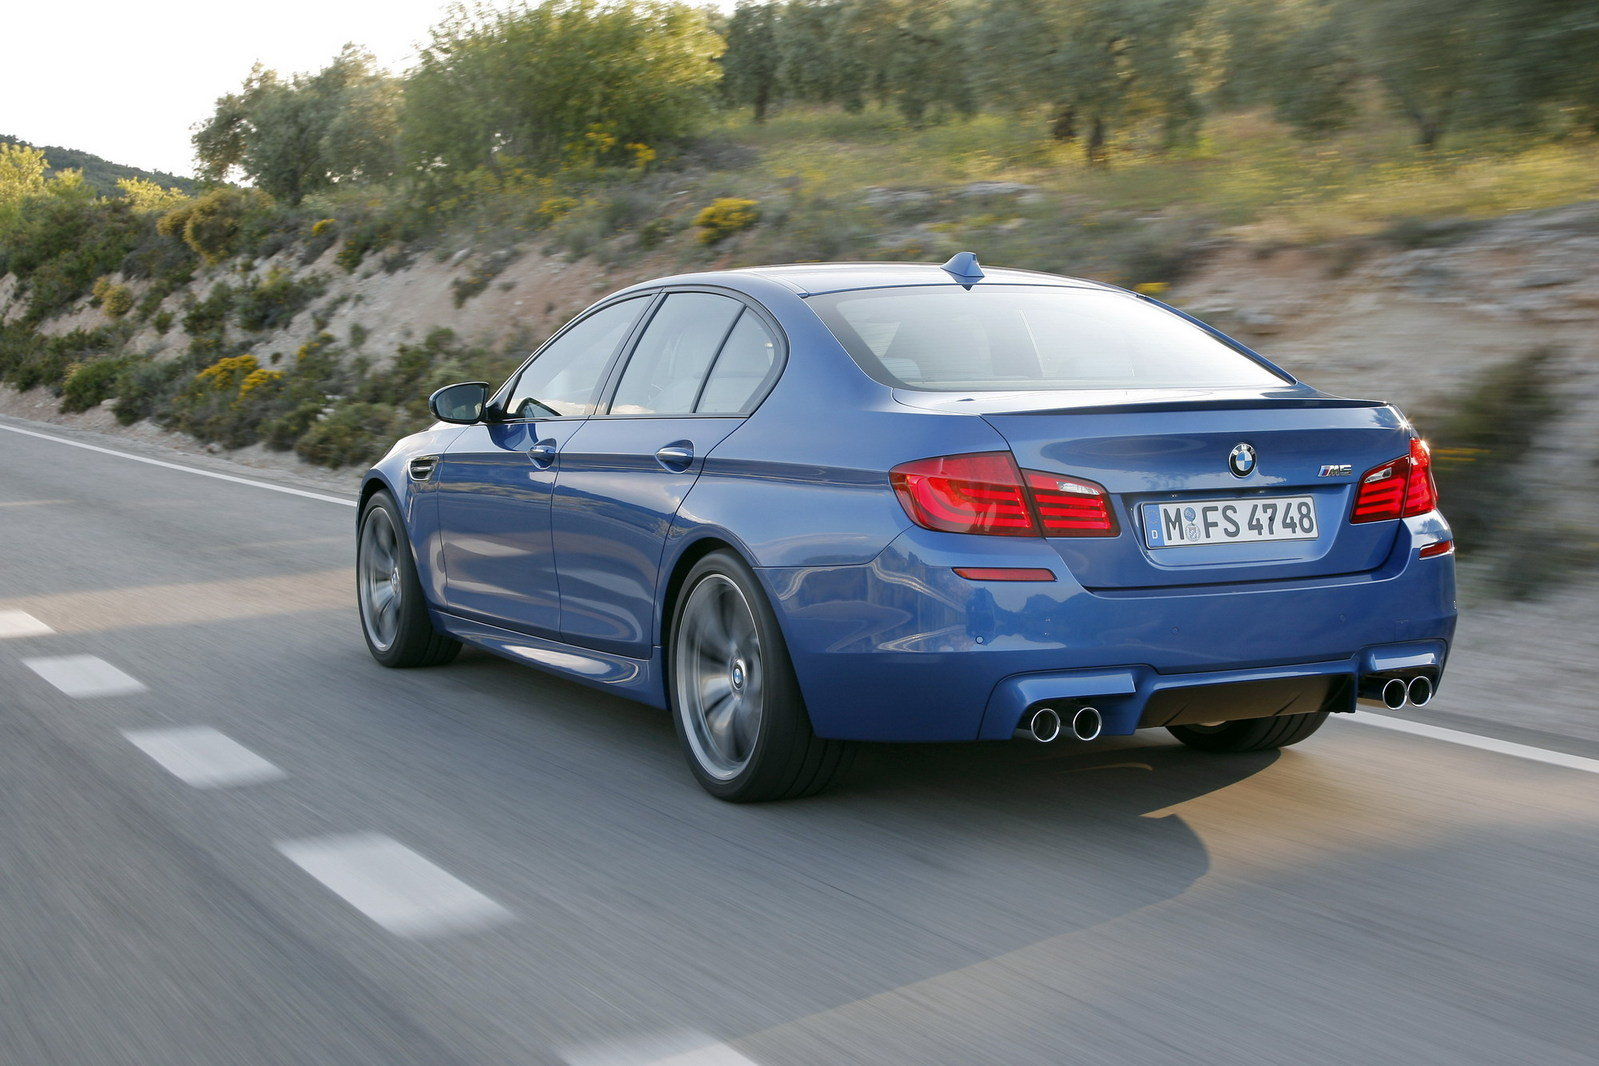 2012 bmw m5 picture 406102 car review top speed. Black Bedroom Furniture Sets. Home Design Ideas